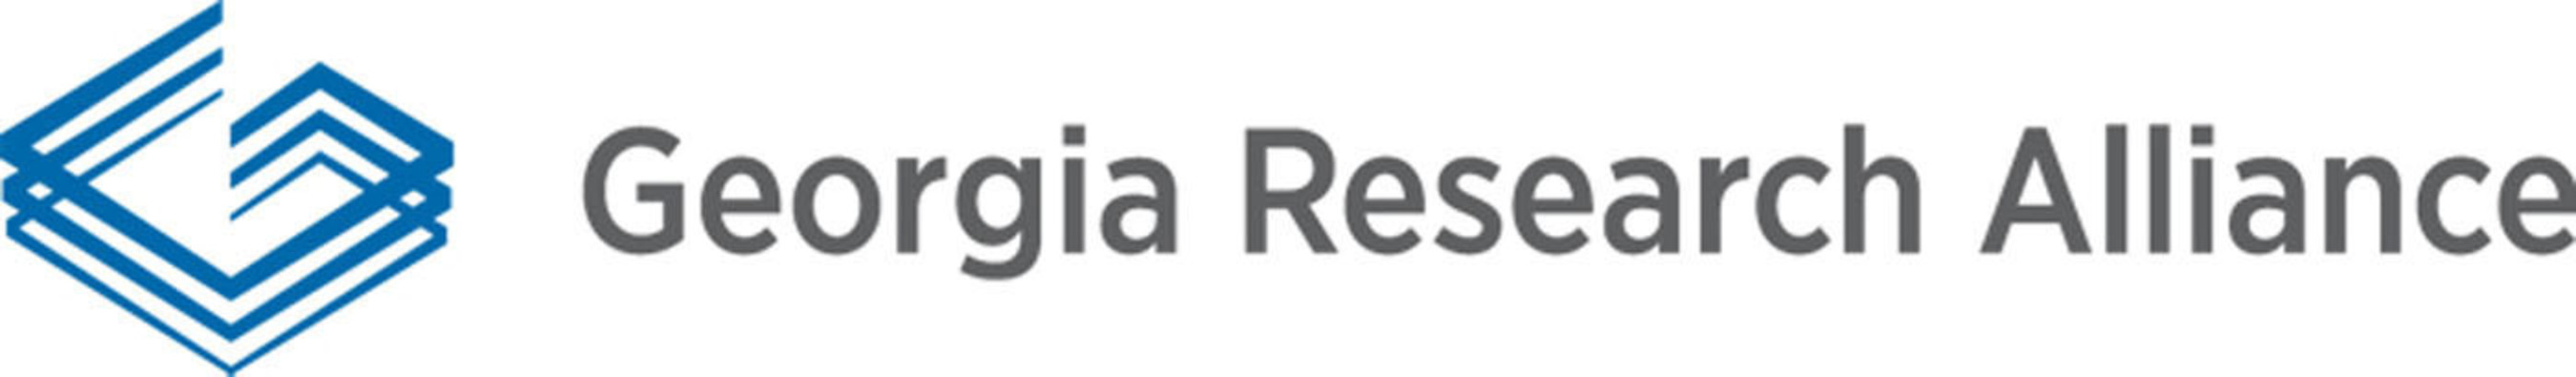 Georgia Research Alliance.